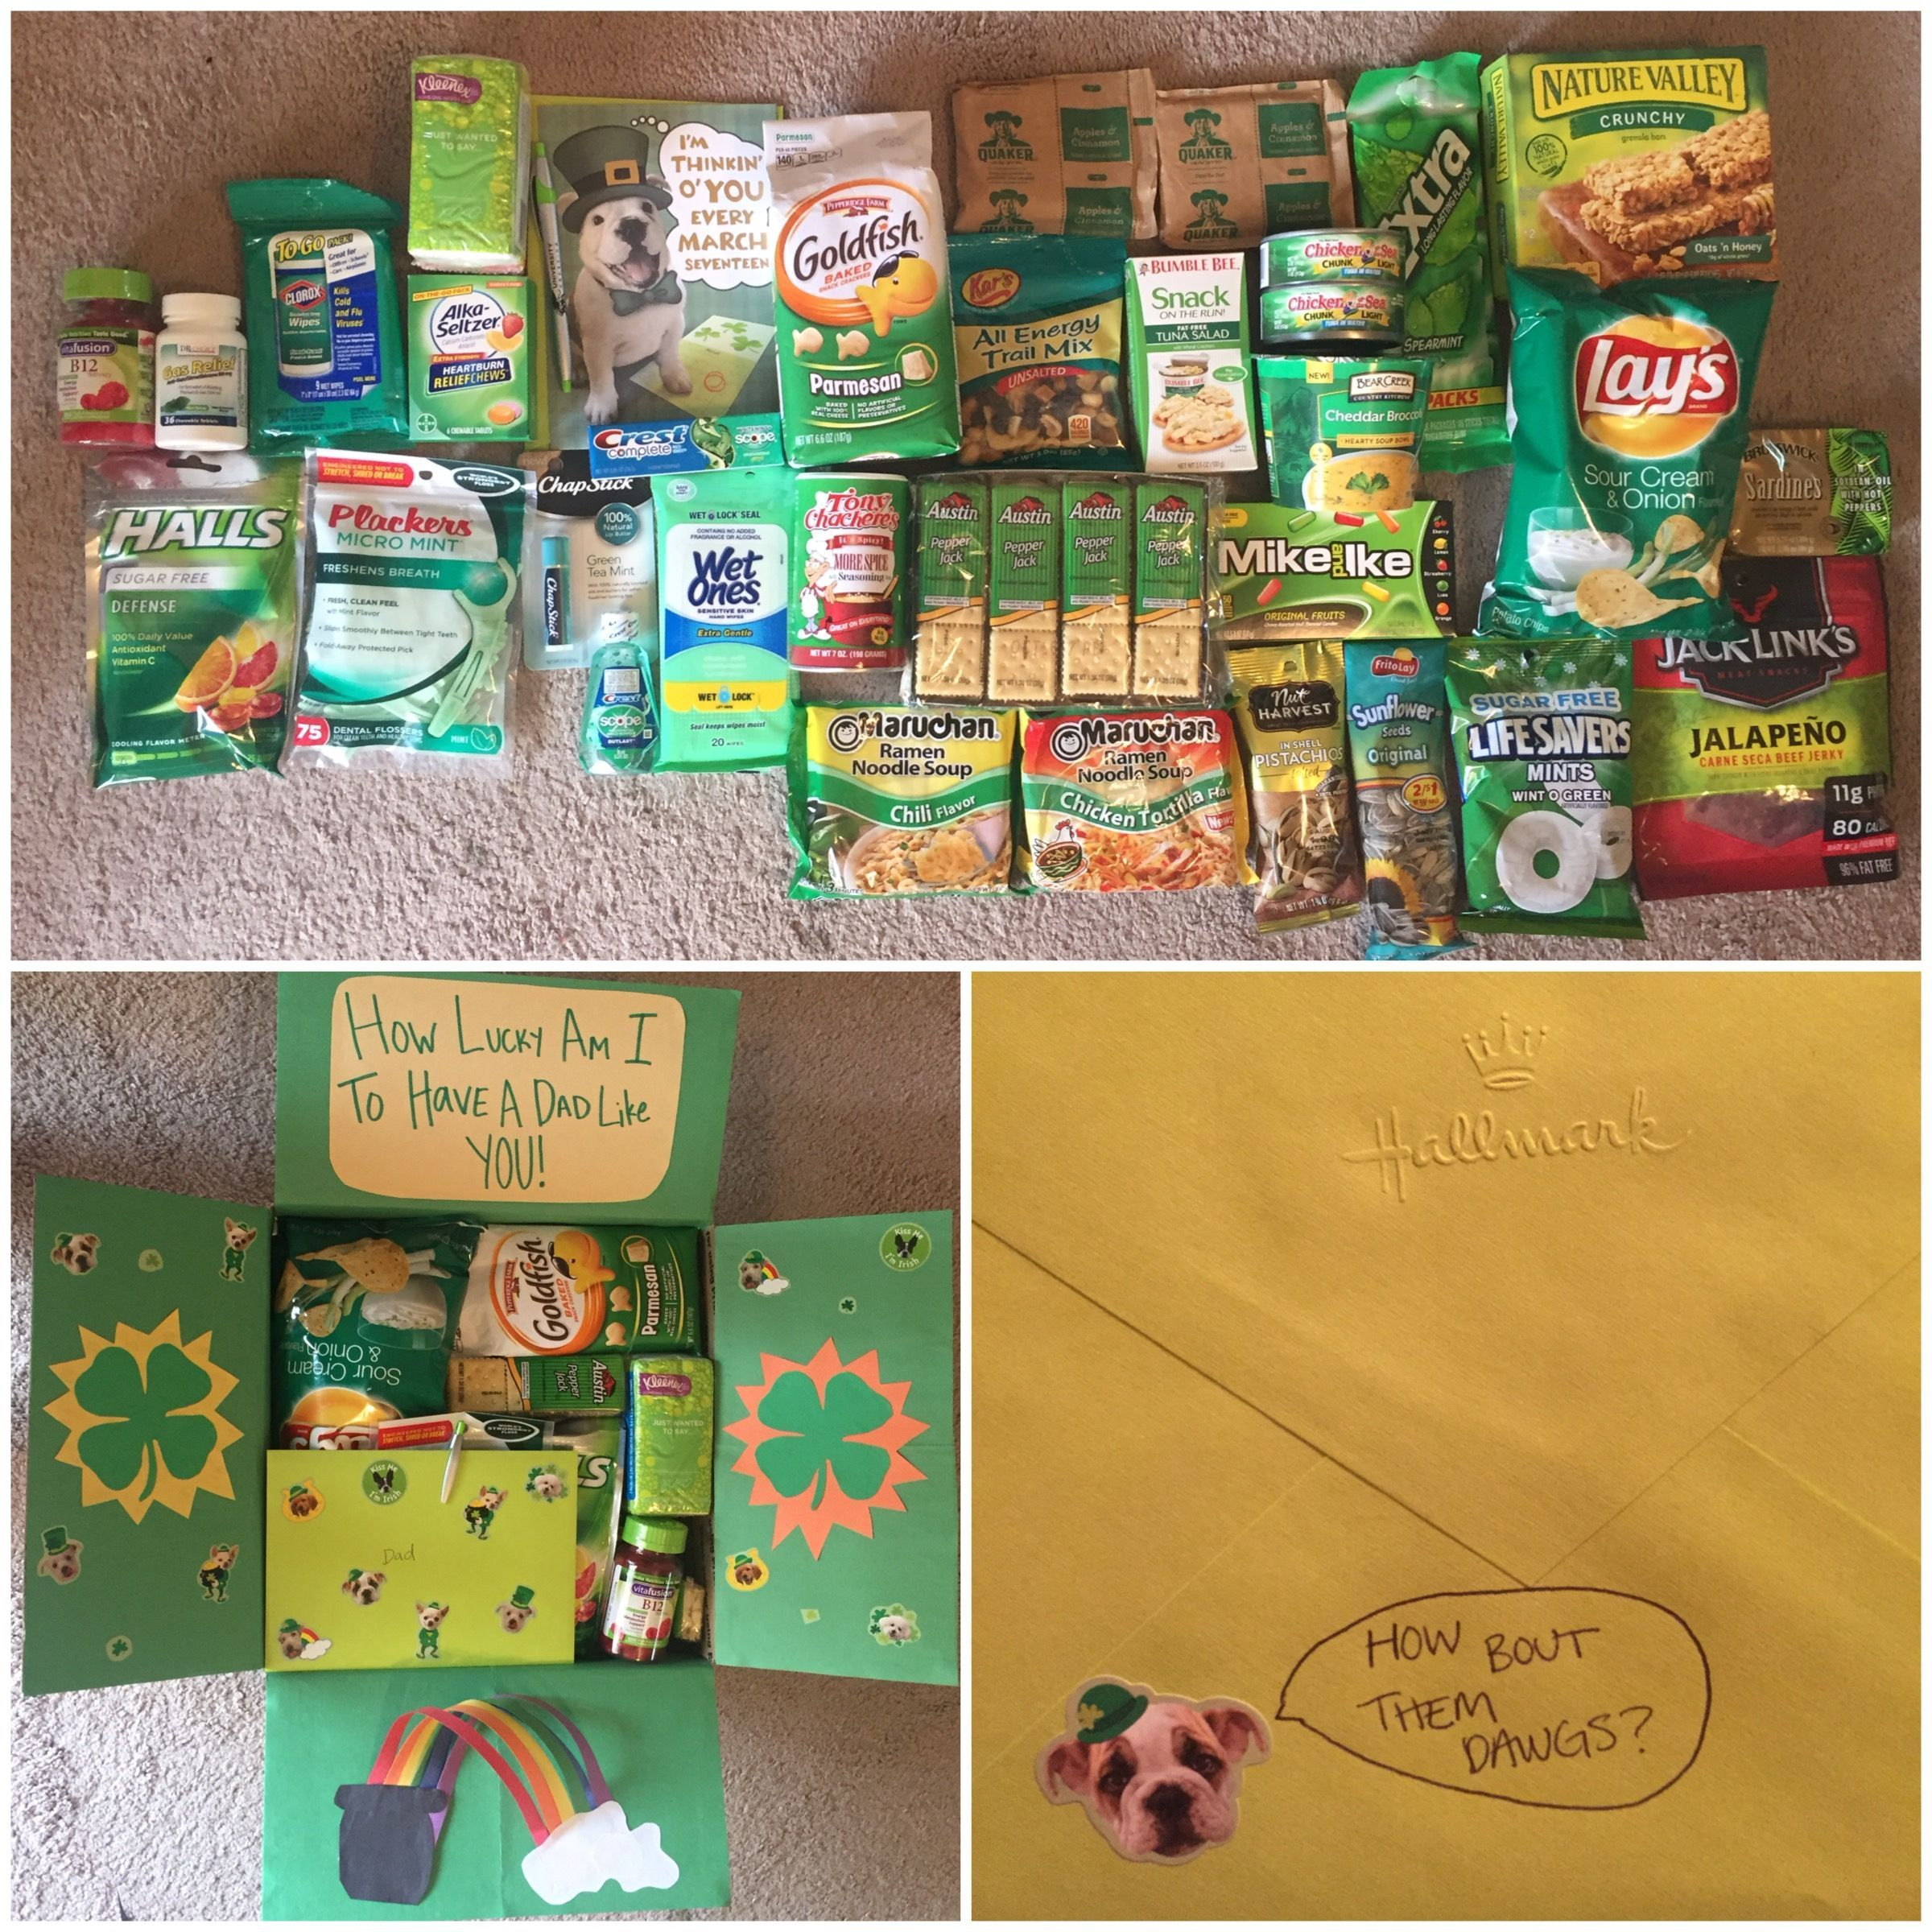 Pin by laurie bagley on BAGS Care Packages Daddy, My dad